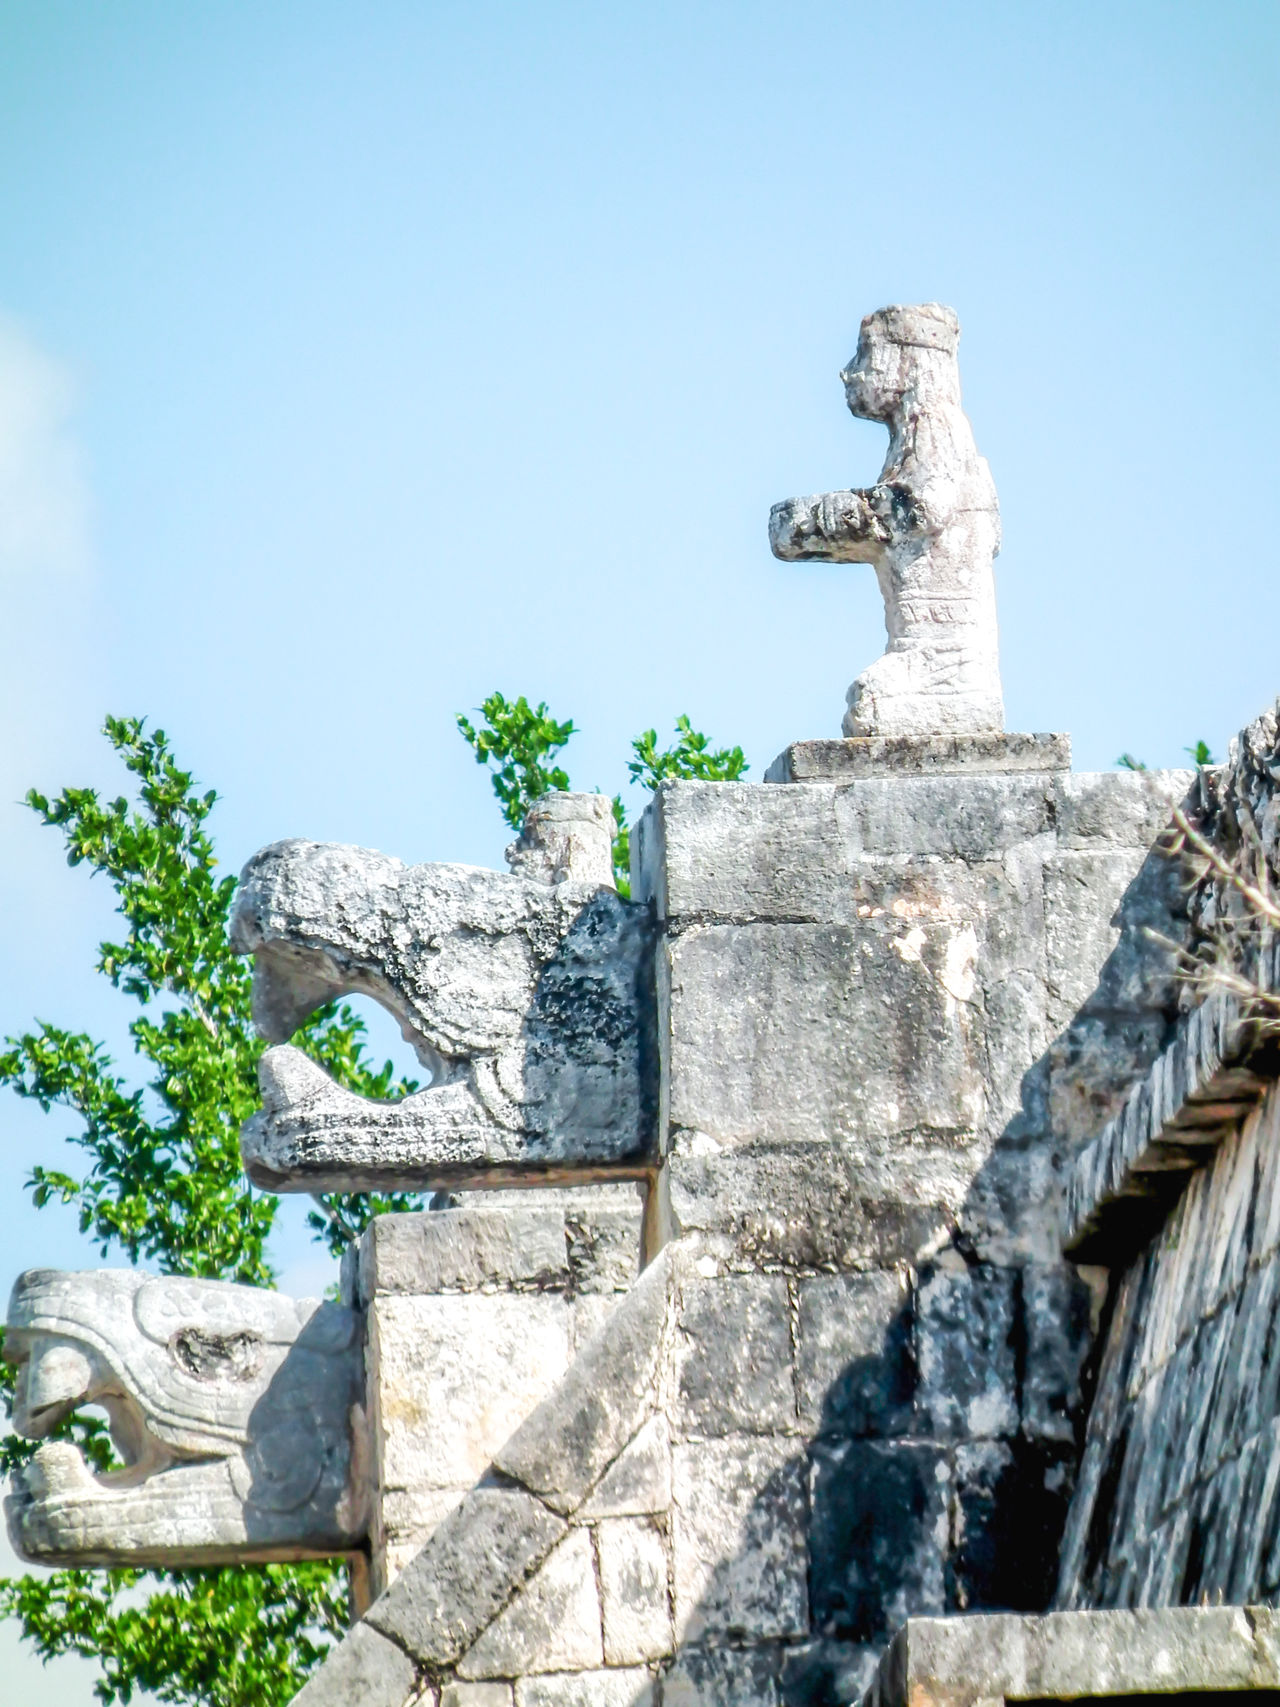 Archaeological Sites Architecture Chichen Itza High Section History Low Angle View Mayan Mayan Ruins Mayan Wonders No People Stone Stone Material Temple Of A Thousand Warriors Temple Of Warriors The Past Yucatan Mexico Yucatan Peninsula Yúcatan